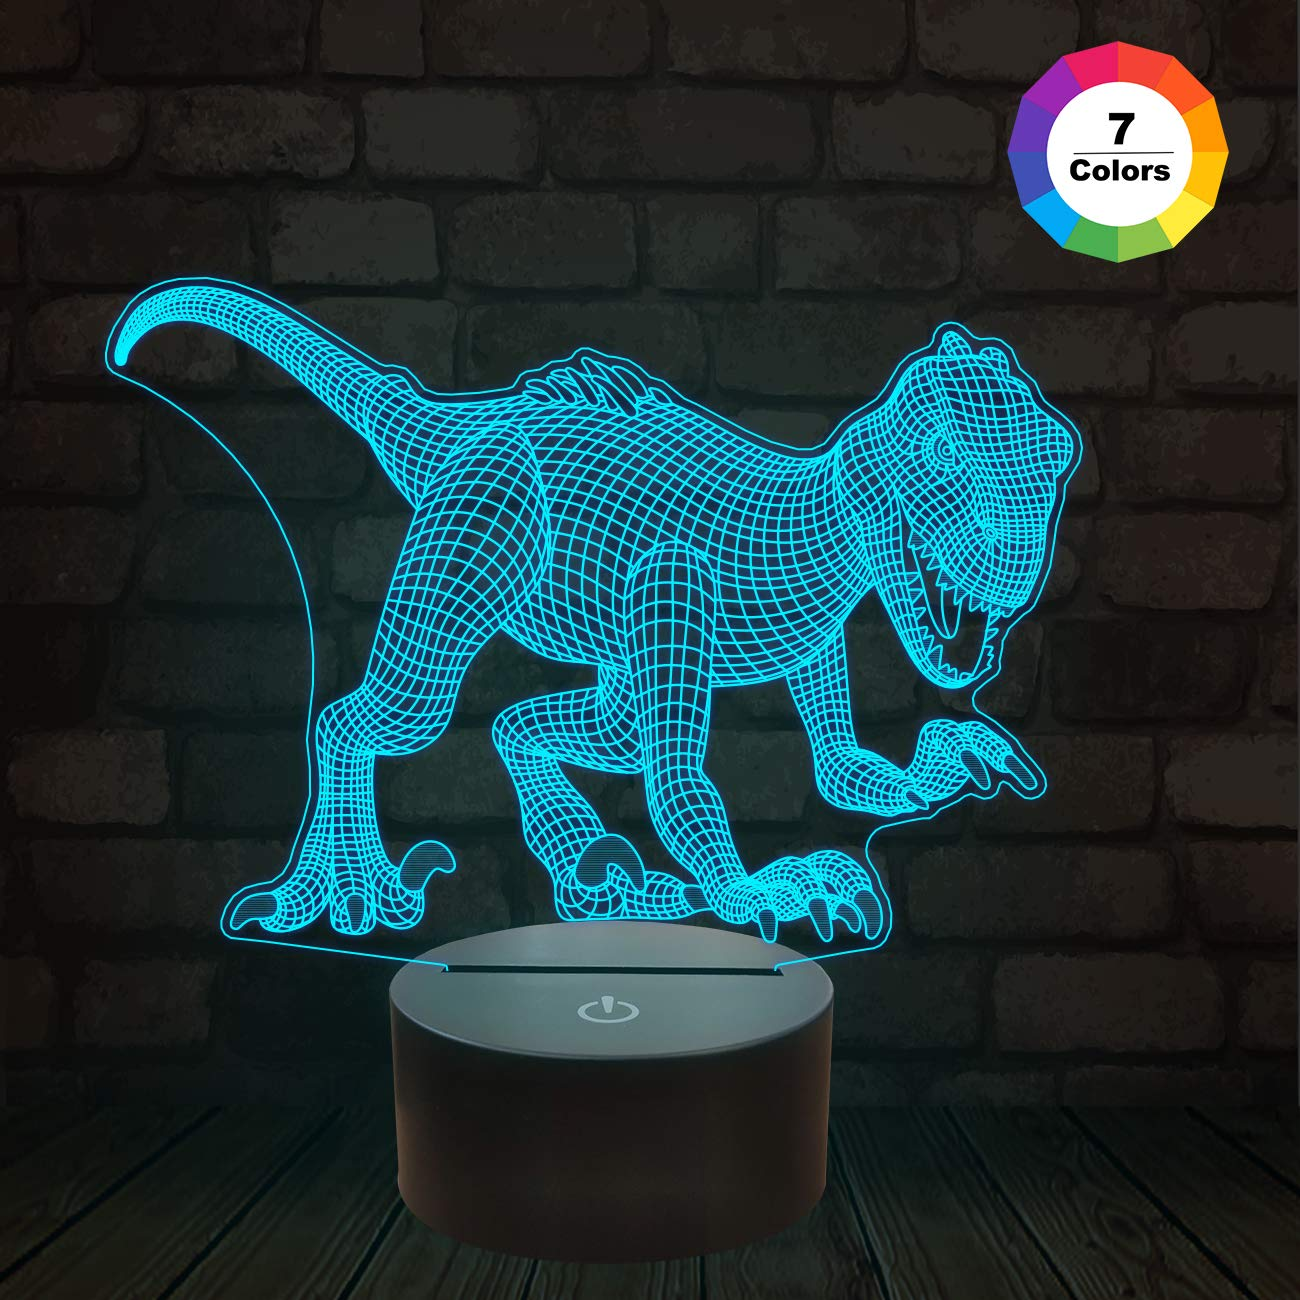 FULLOSUN Jurassic Dinosaur Night Light, 3D Velociraptor Raptor Illusion Bedside Lamp with 7 Colors Changing Kids' Room Décor Birthday Gifts for Boys Baby Teens